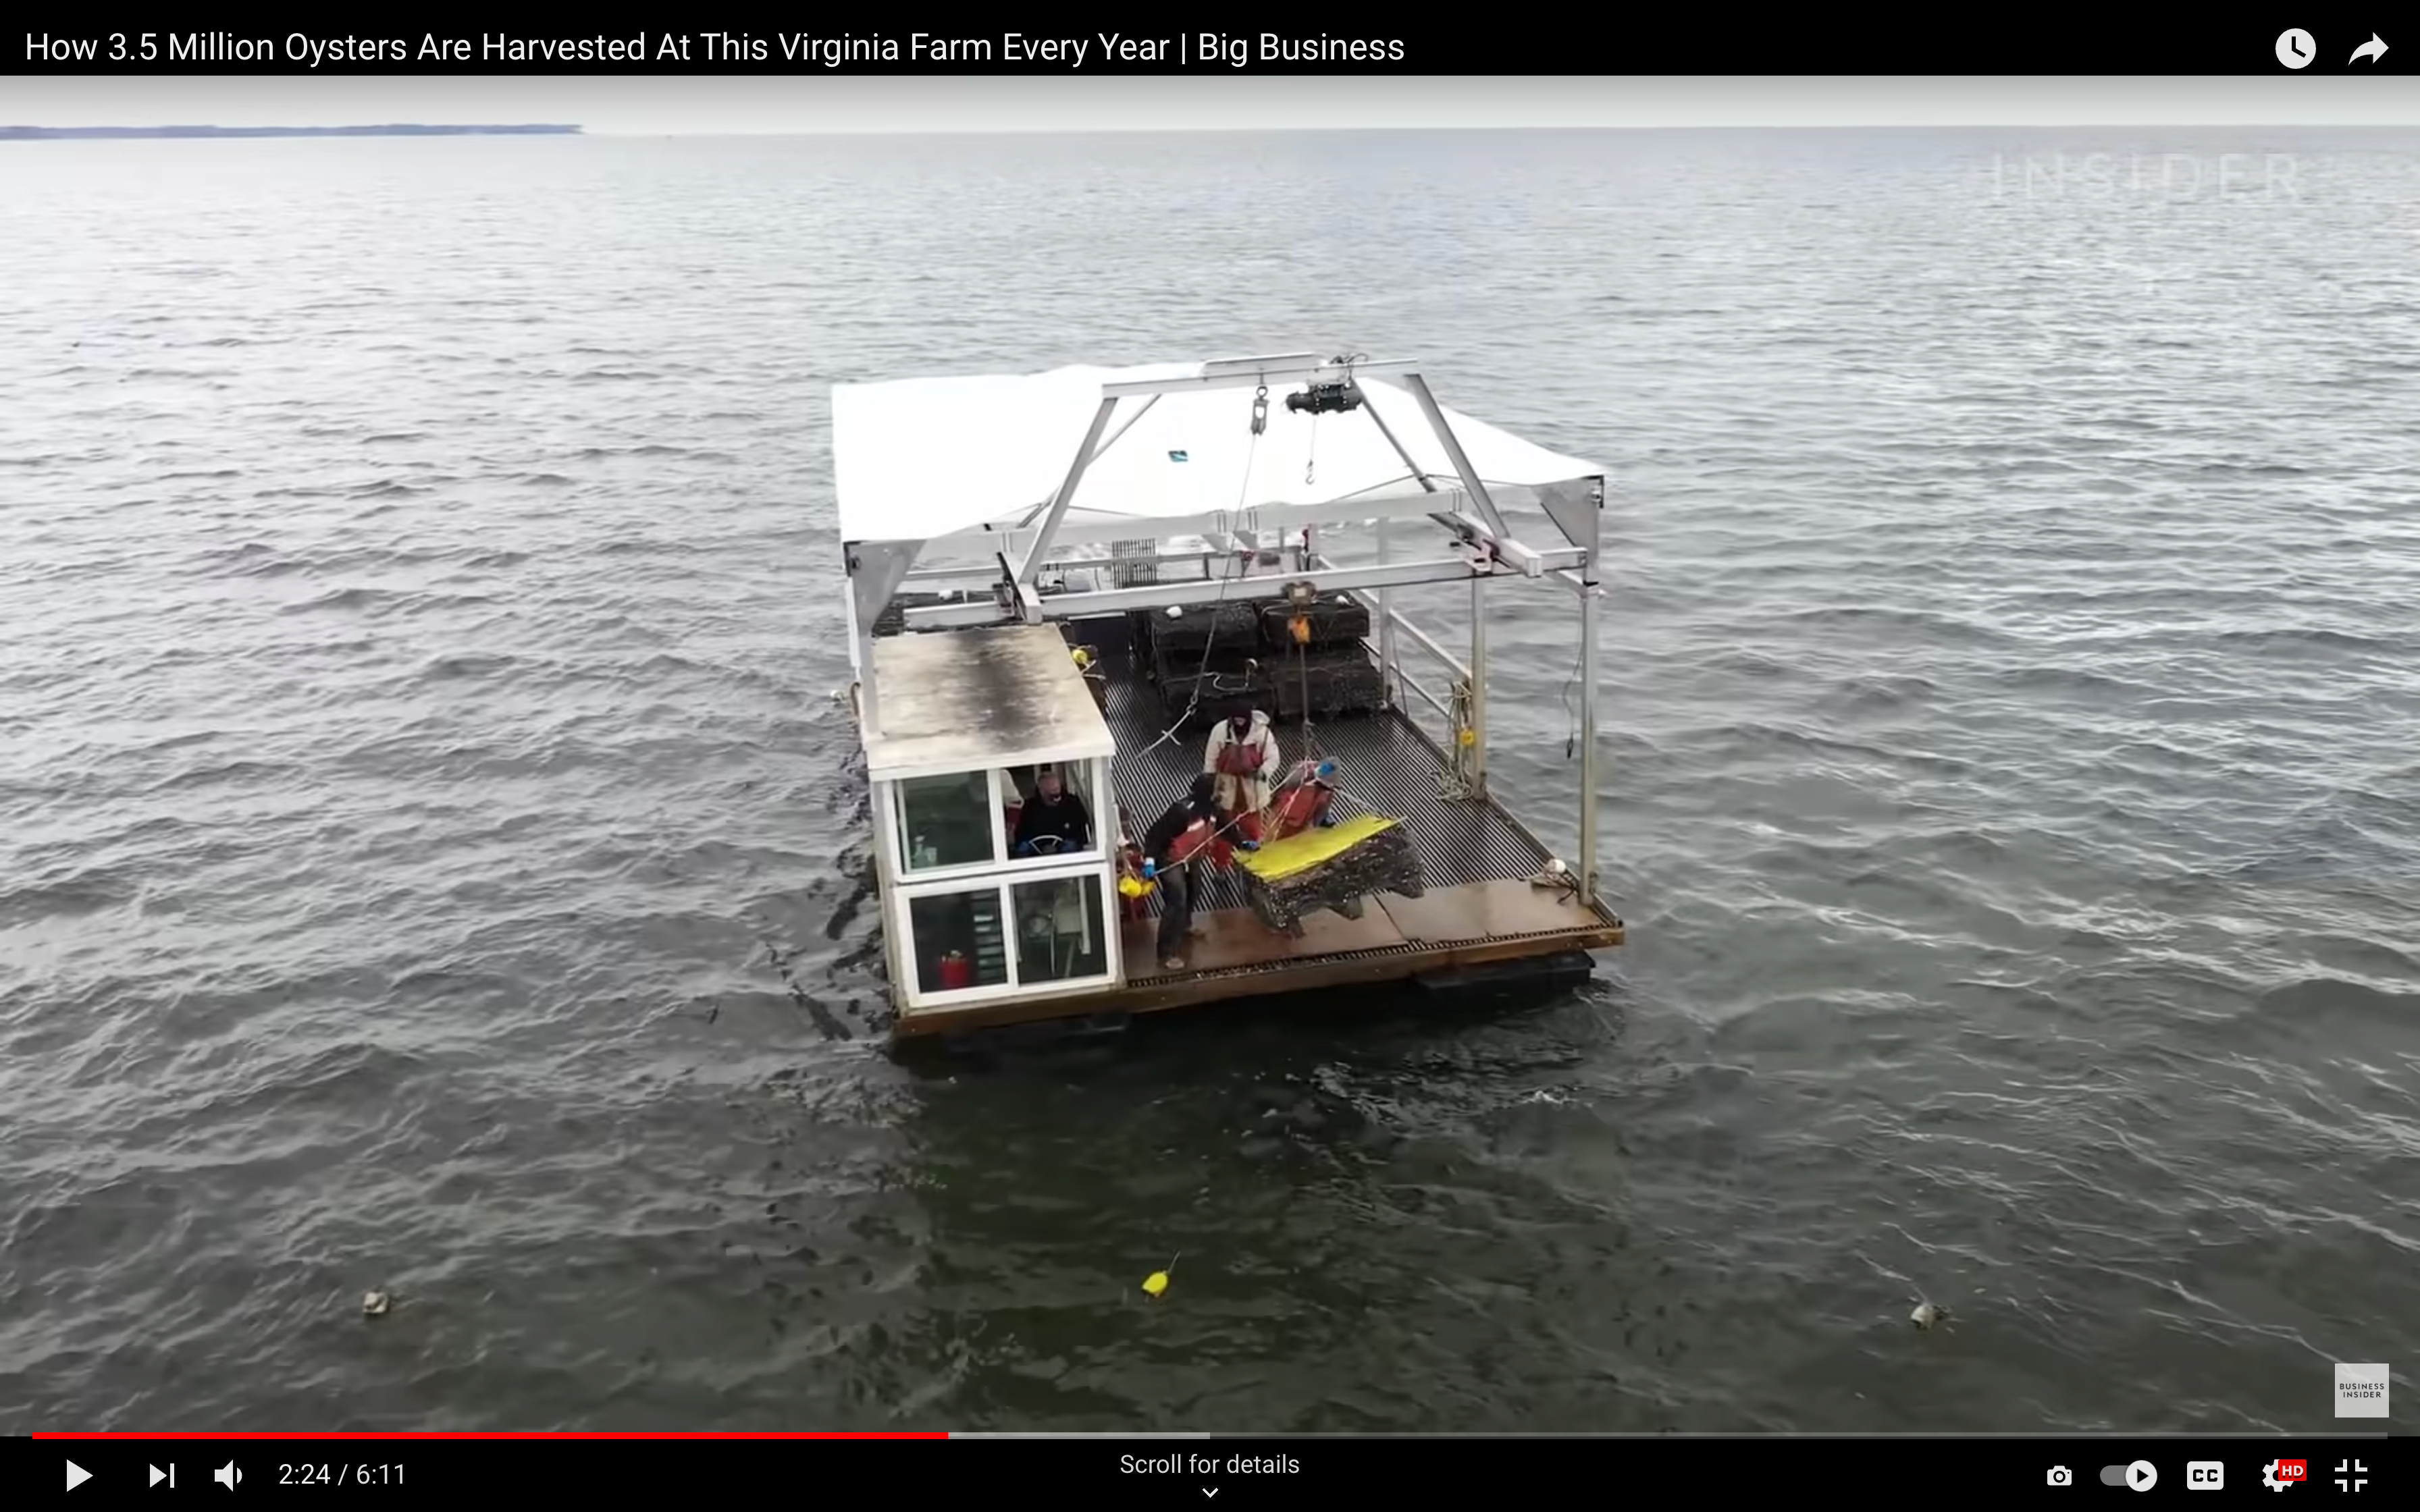 Oyster production in Virginia